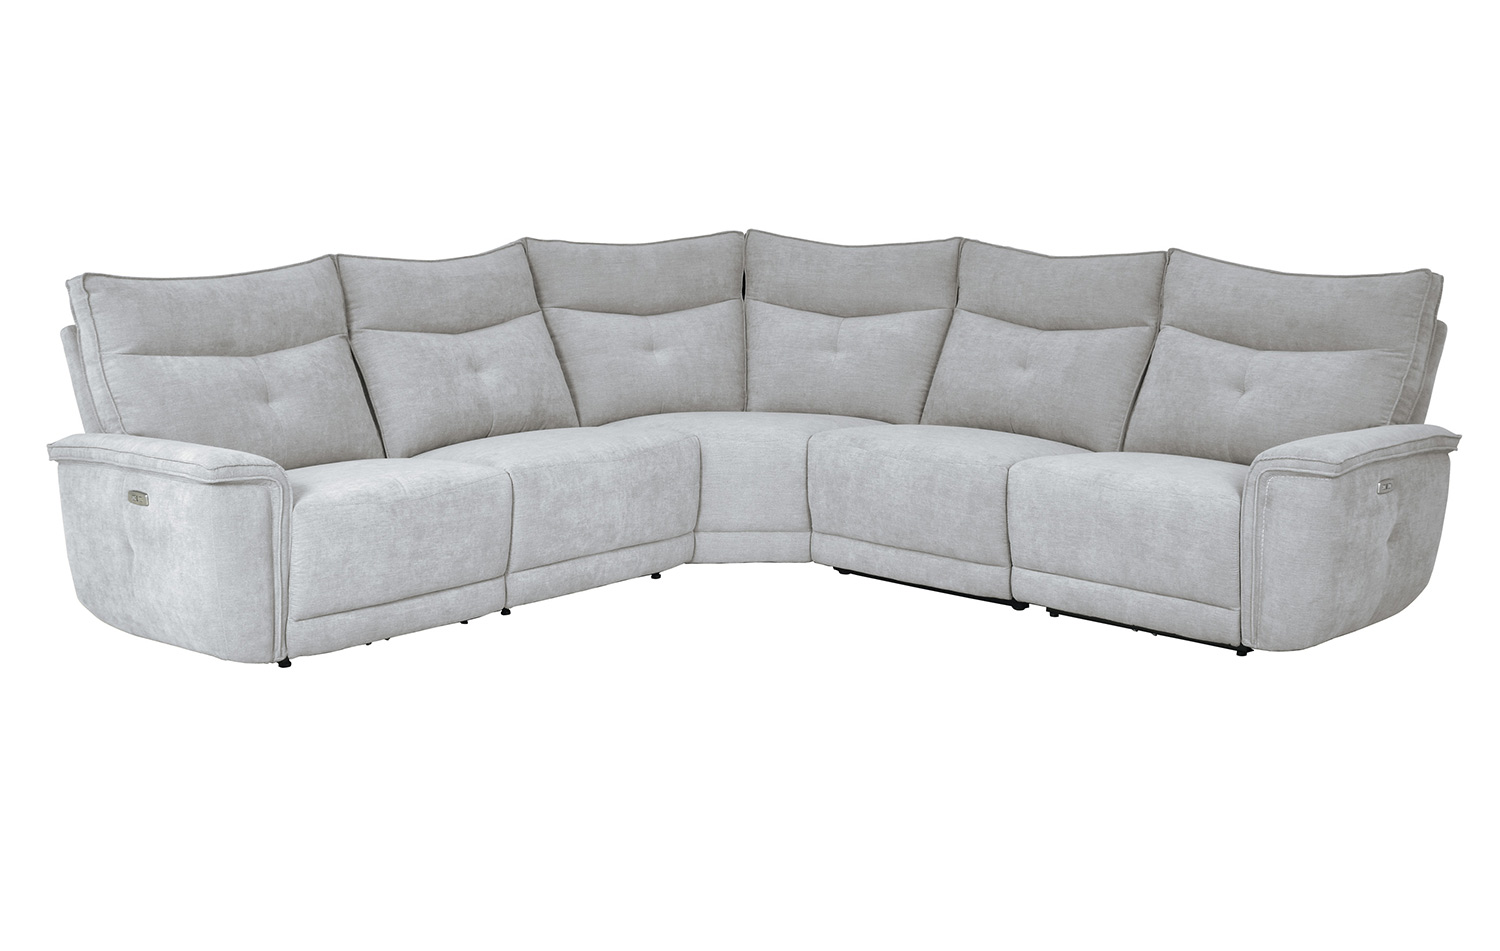 Homelegance Tesoro Power Reclining Sectional Sofa Set - Mist Gray